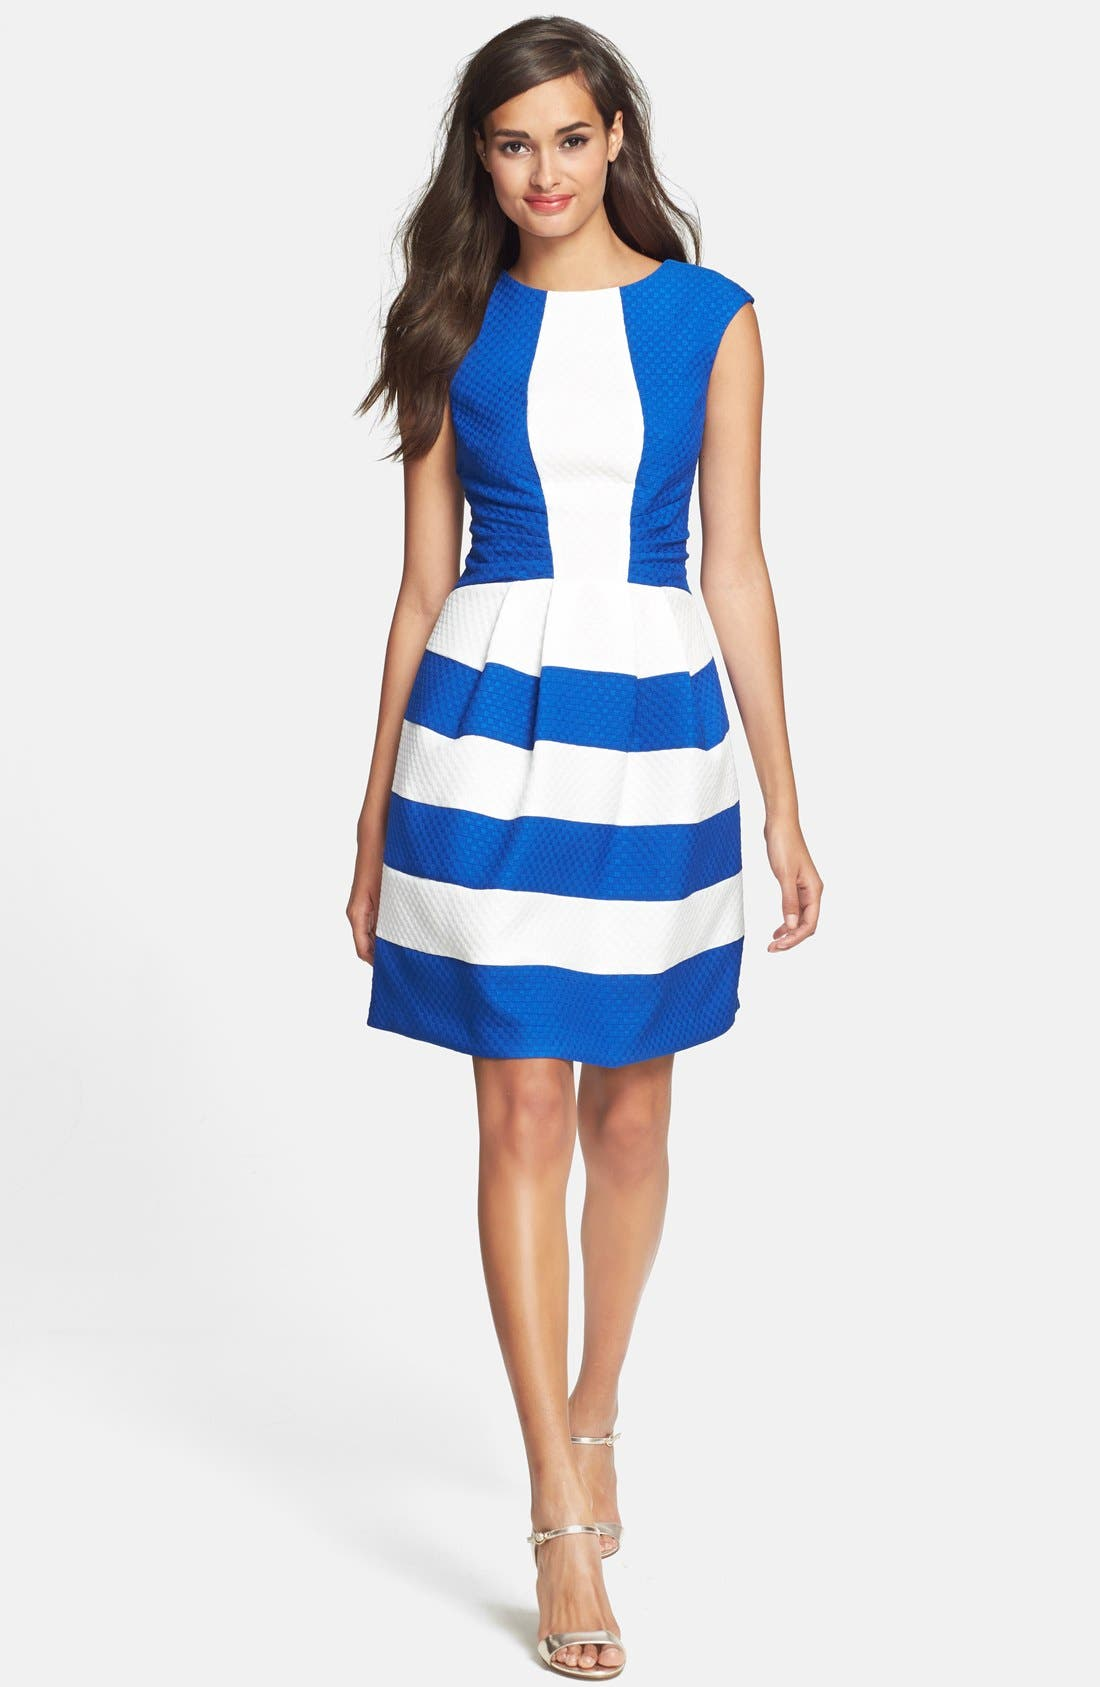 Alternate Image 1 Selected - Gabby Skye Ruched Colorblock Knit Fit & Flare Dress